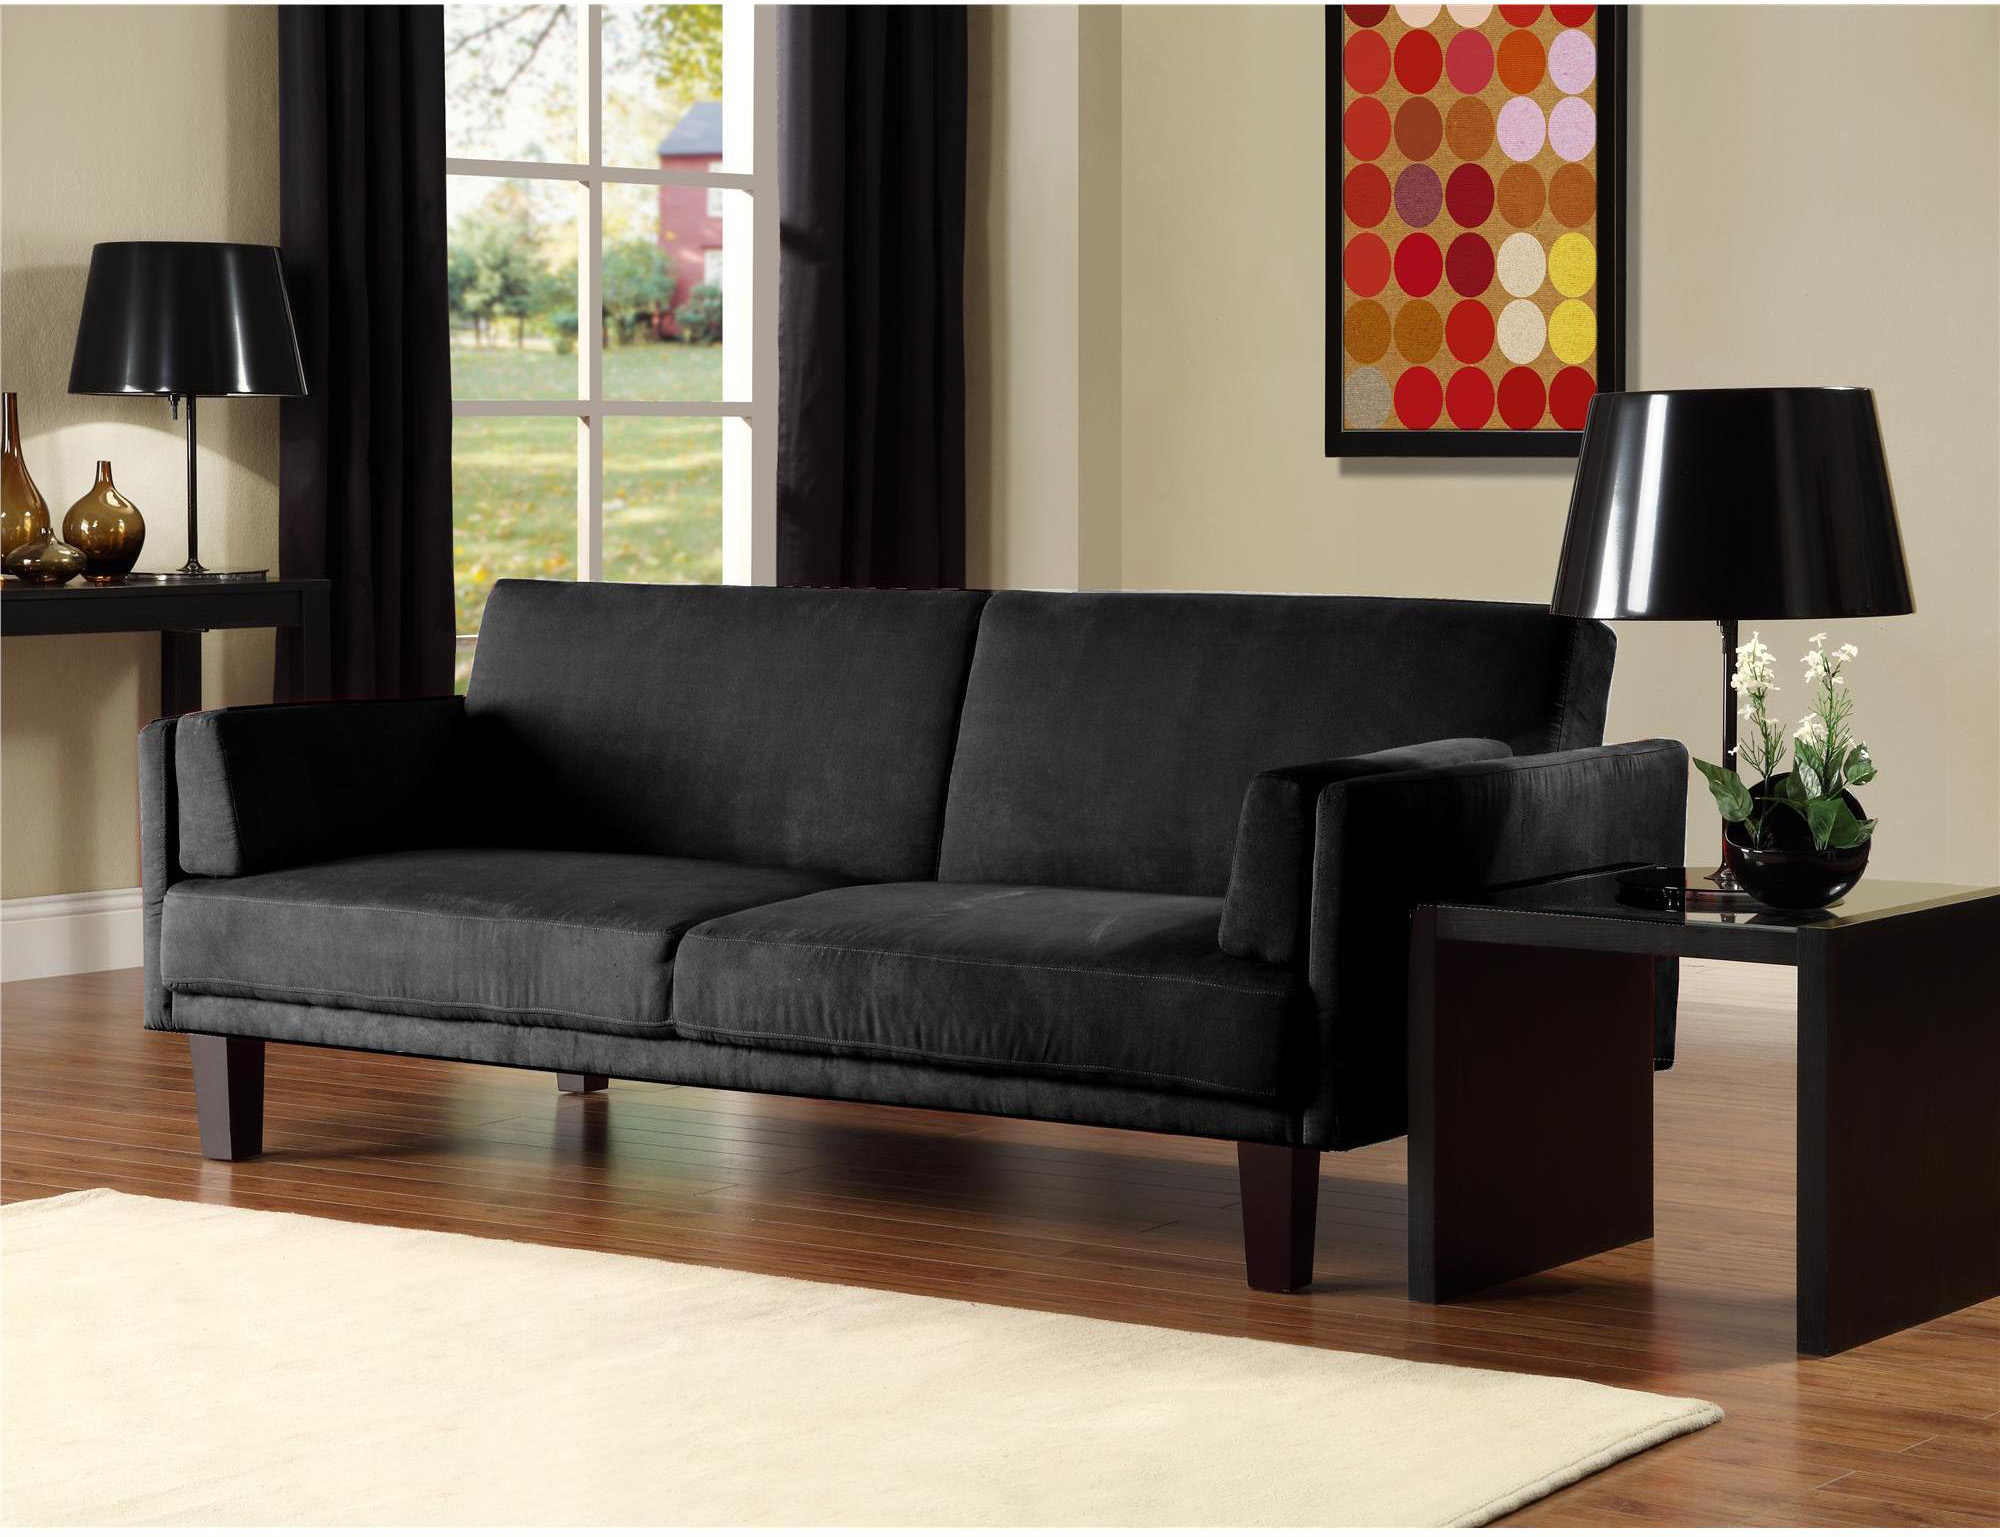 12 Affordable (And Chic) Small Sleeper Sofas For Tight Spaces In Easton Small Space Sectional Futon Sofas (View 15 of 15)